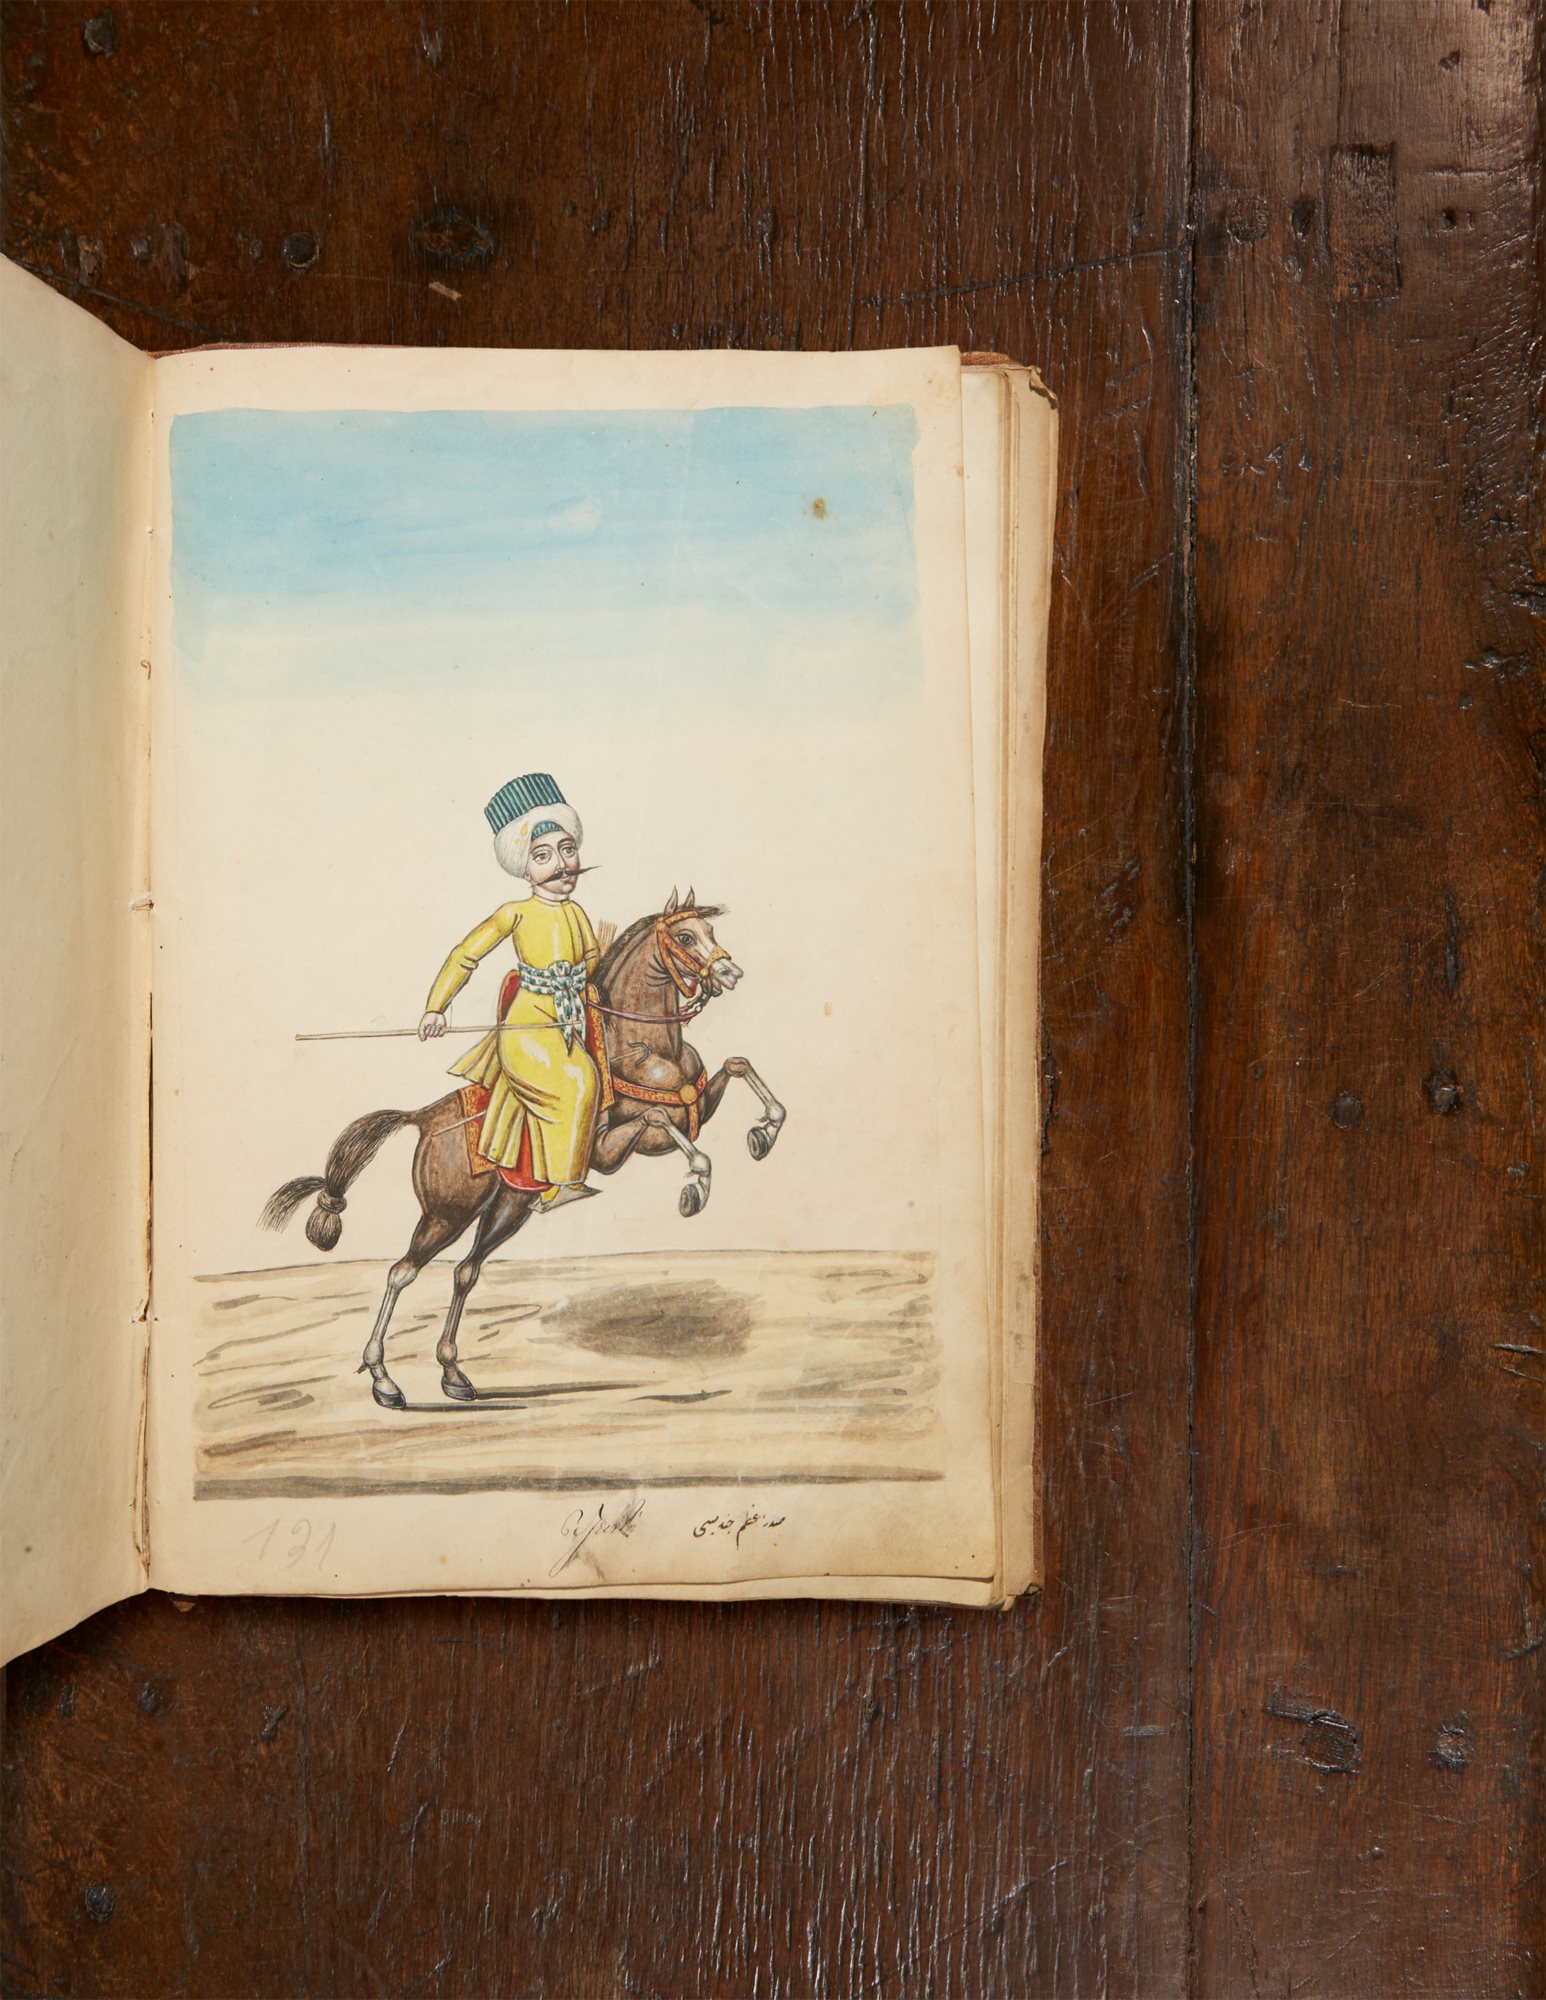 Lot 406: A book of various types of Ottoman dress, containing 148 original watercolors by a follower of the artist Fenerci Mehmed, sold to a prominent private collector in the room for $ 137,500